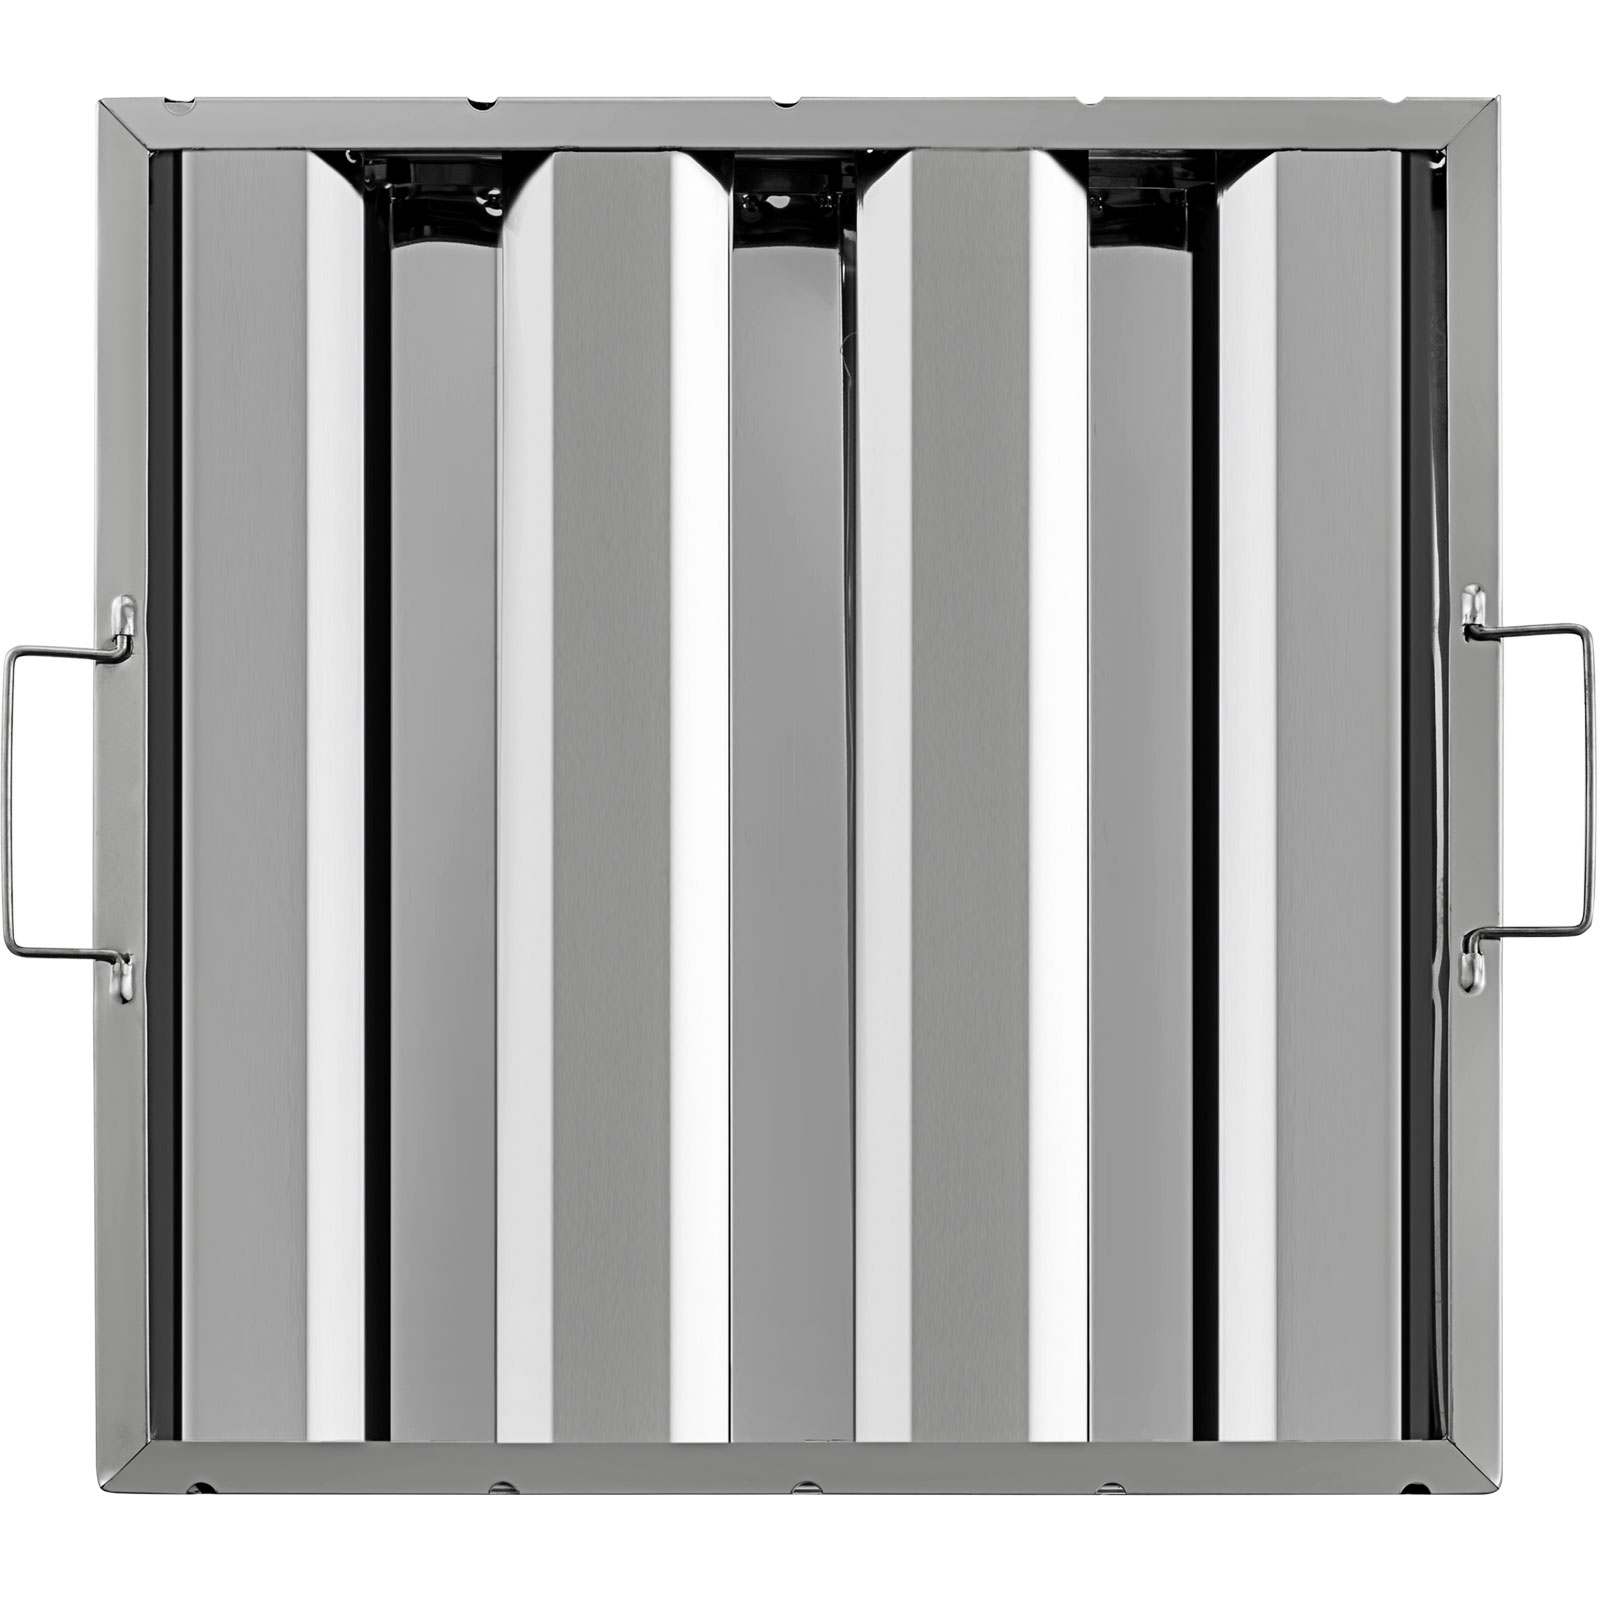 Commercial Kitchen Exhaust Hood Filters: 6 PACK Commercial Kitchen Stainless Steel Exhaust Hood